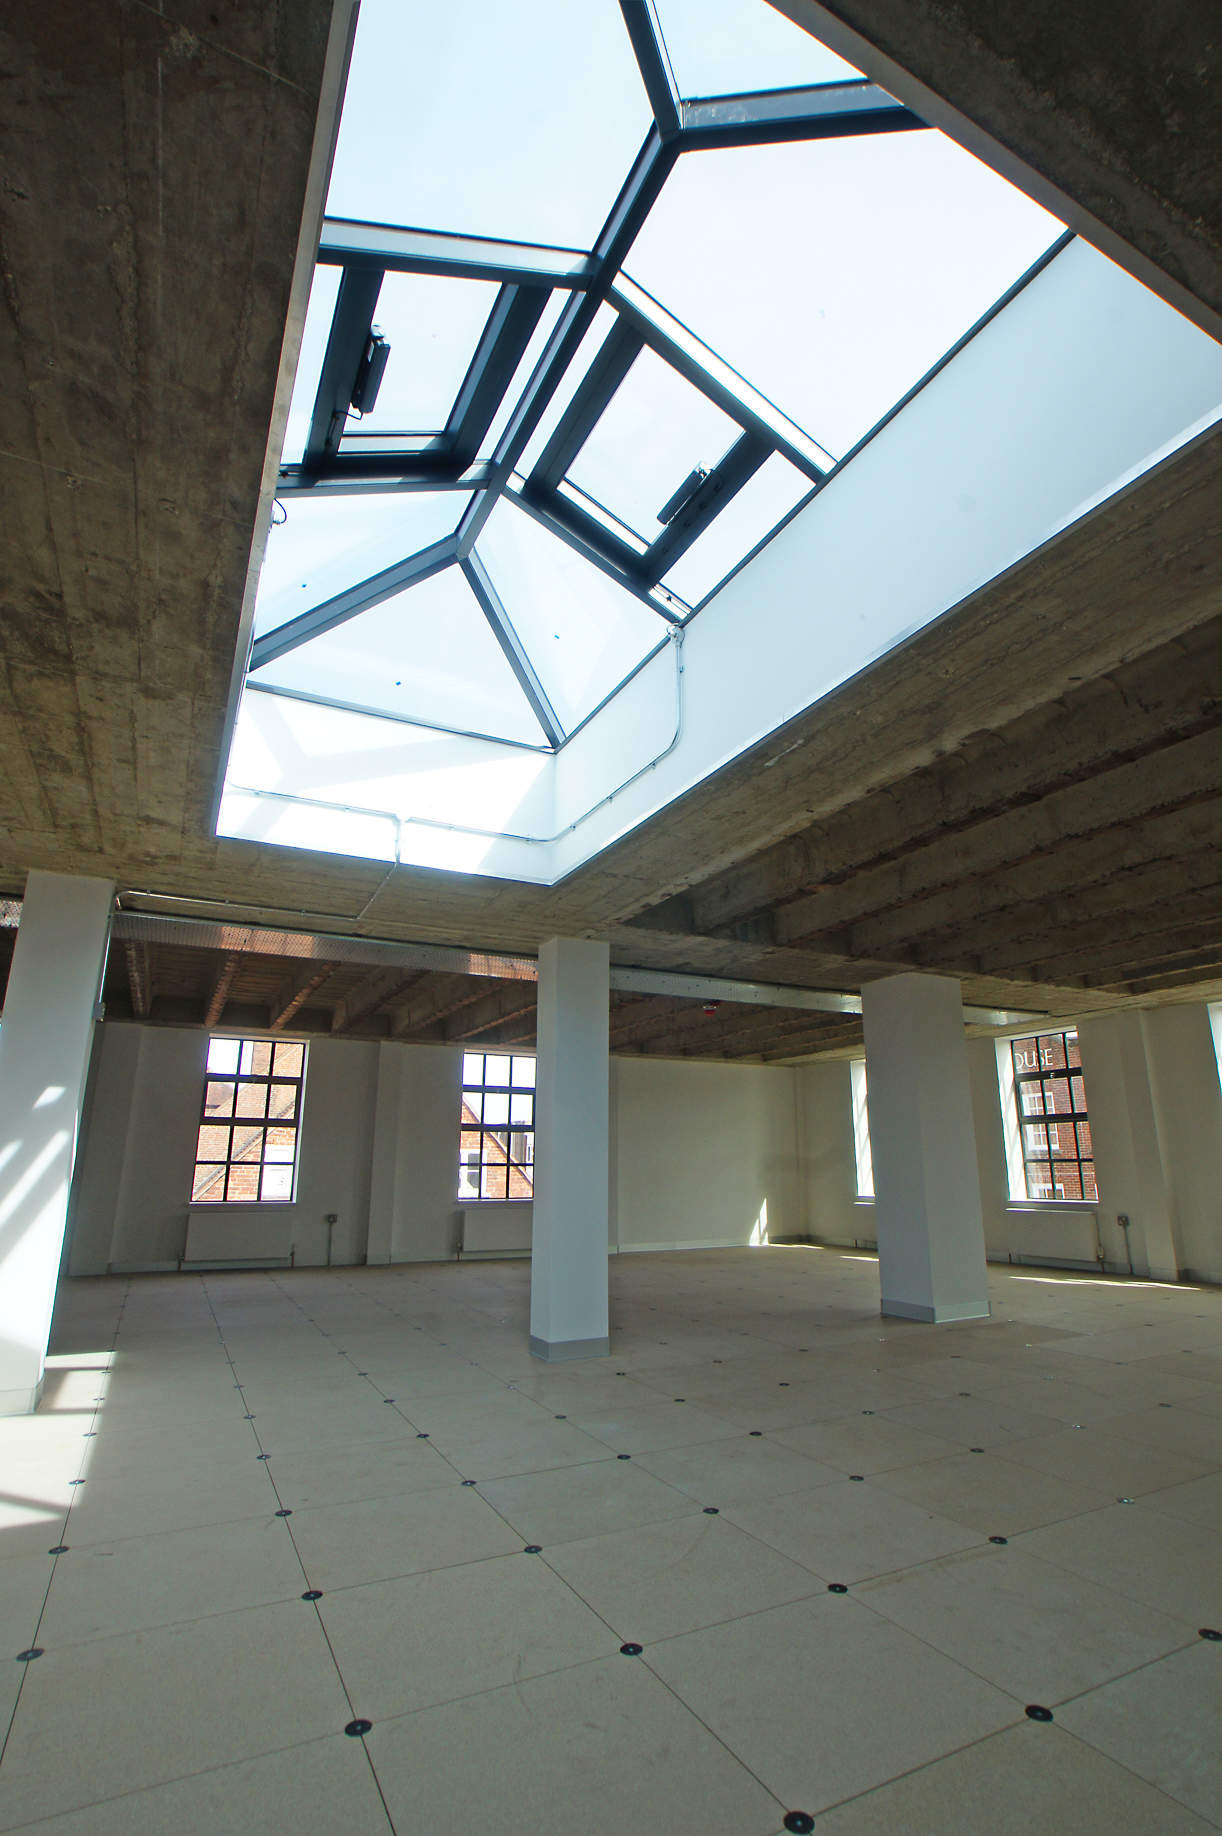 Inspiring Office Space to Let in Chichester City Centre. North Street